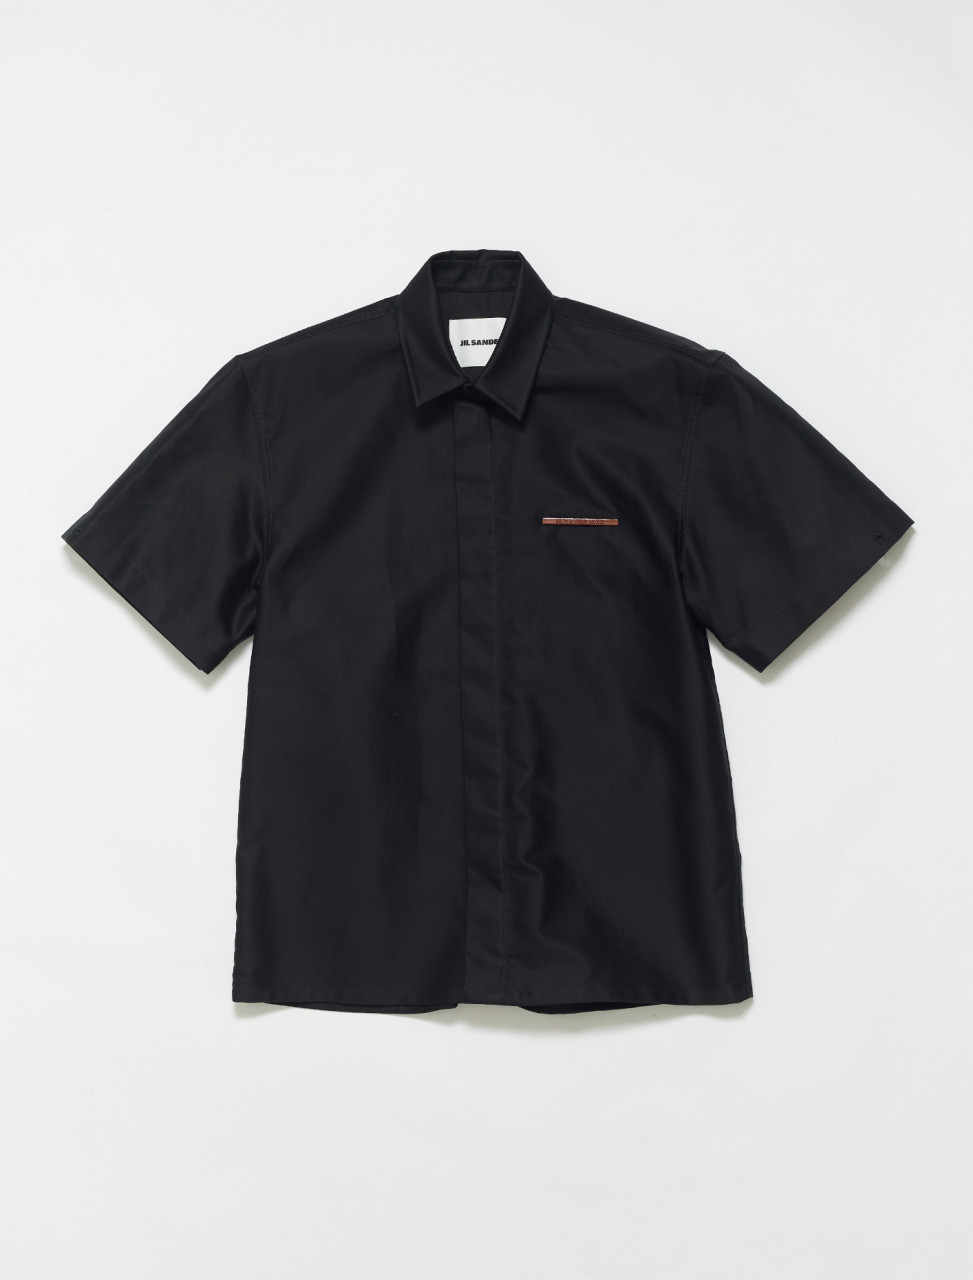 JSMS740626-MS241000-001 JIL SANDER SHORT SLEEVED SHIRT WITH PIN DETAIL BLACK